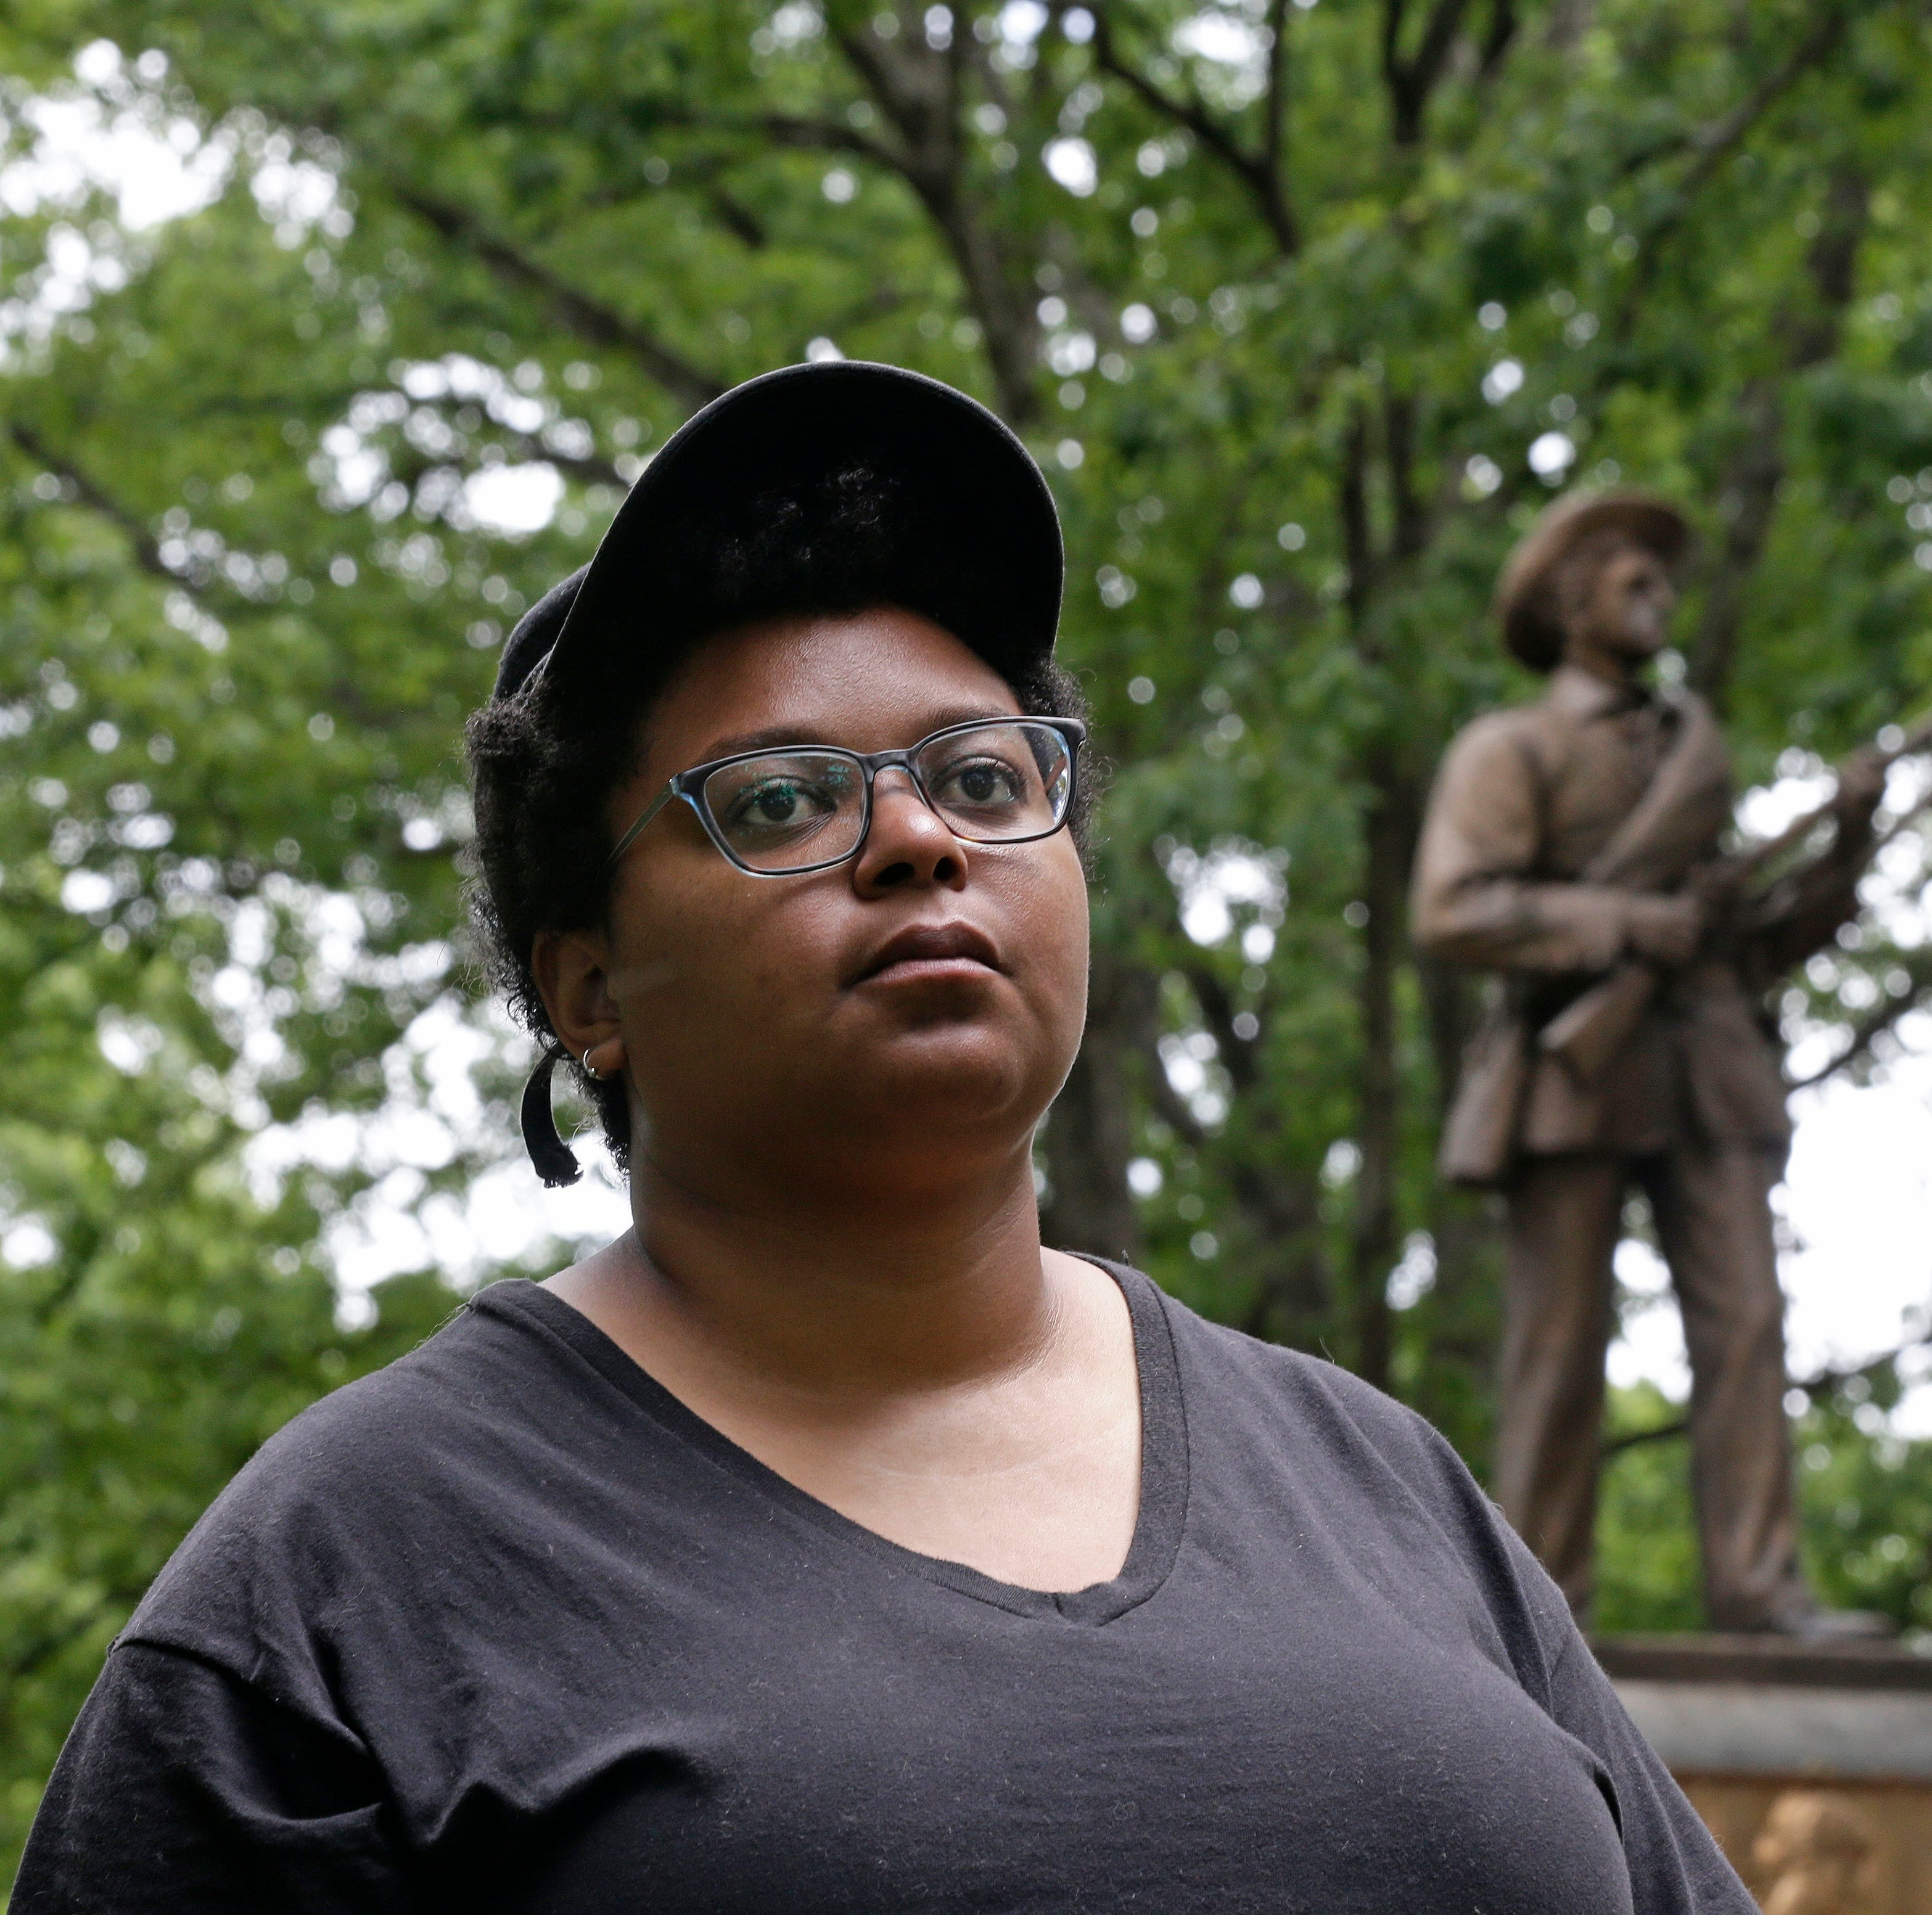 Women's group behind Confederate memorials quietly battles on